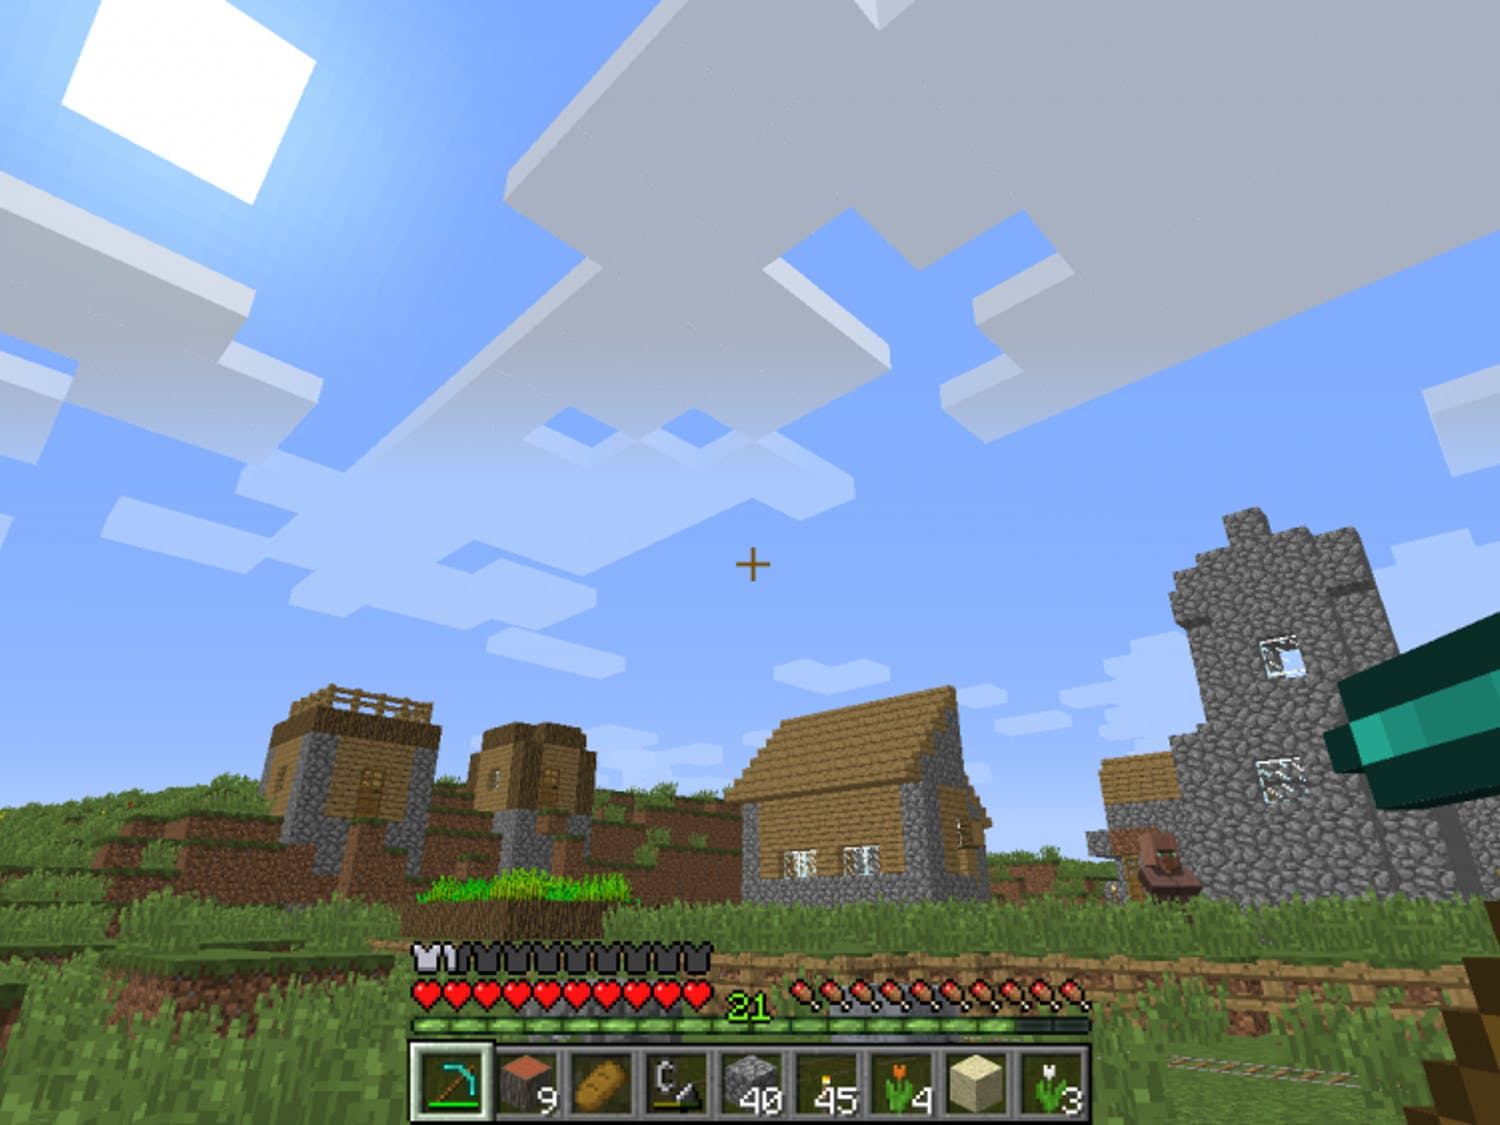 Minecraft's open layout allows for maximum creativity.